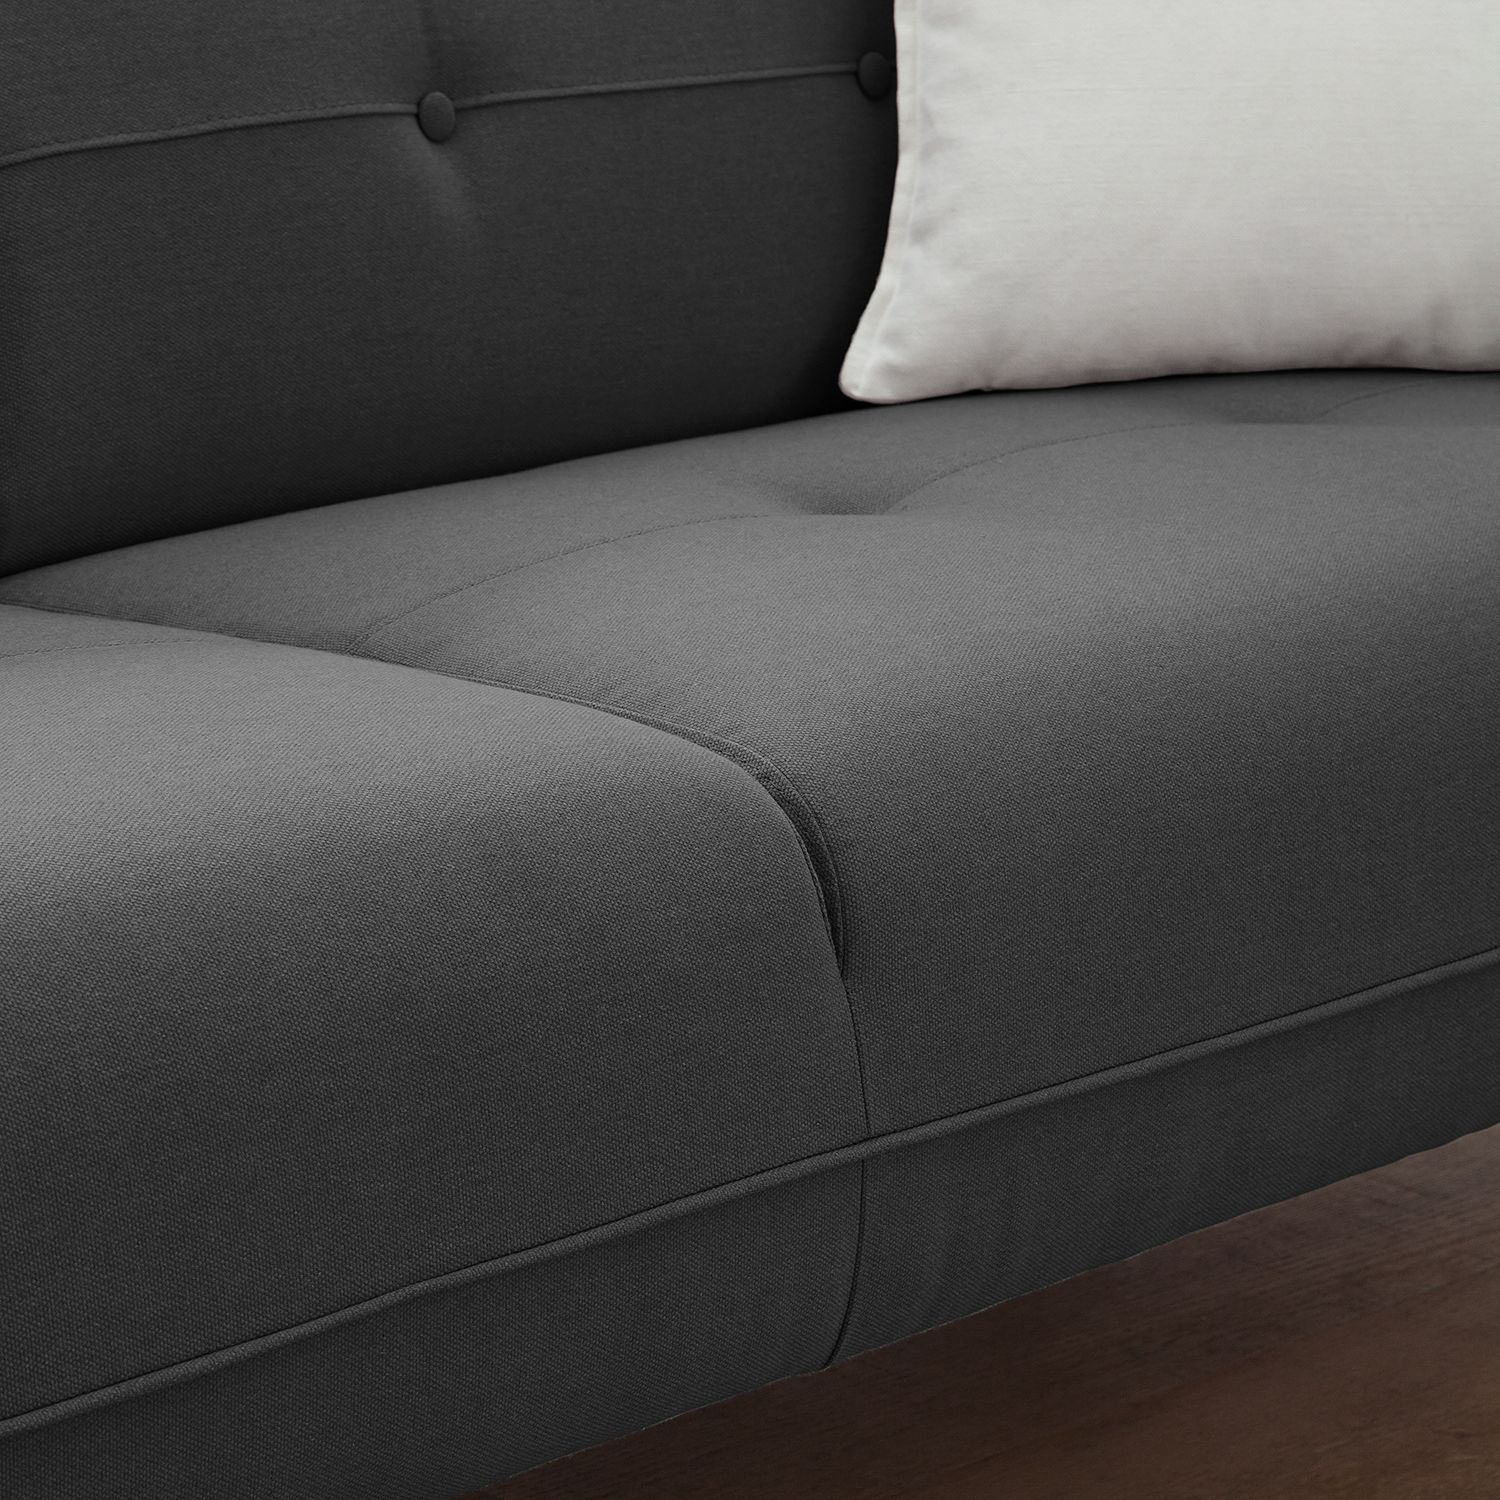 Webstoff Sofa Webstoff Sofa Awesome Sofa Seed Sitzer Webstoff With Webstoff